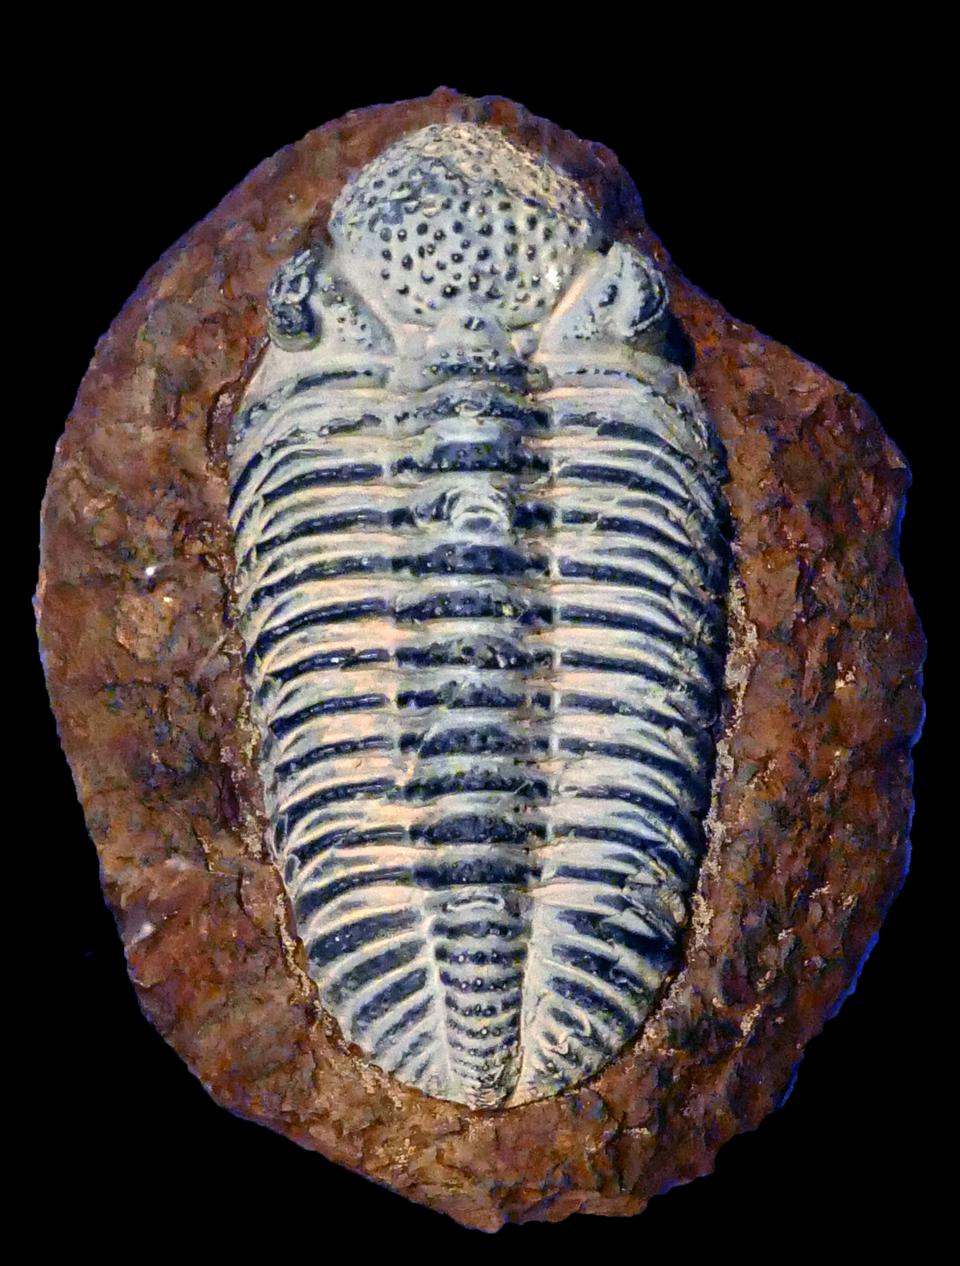 Trilobites form one of the earliest-known groups of arthropods.